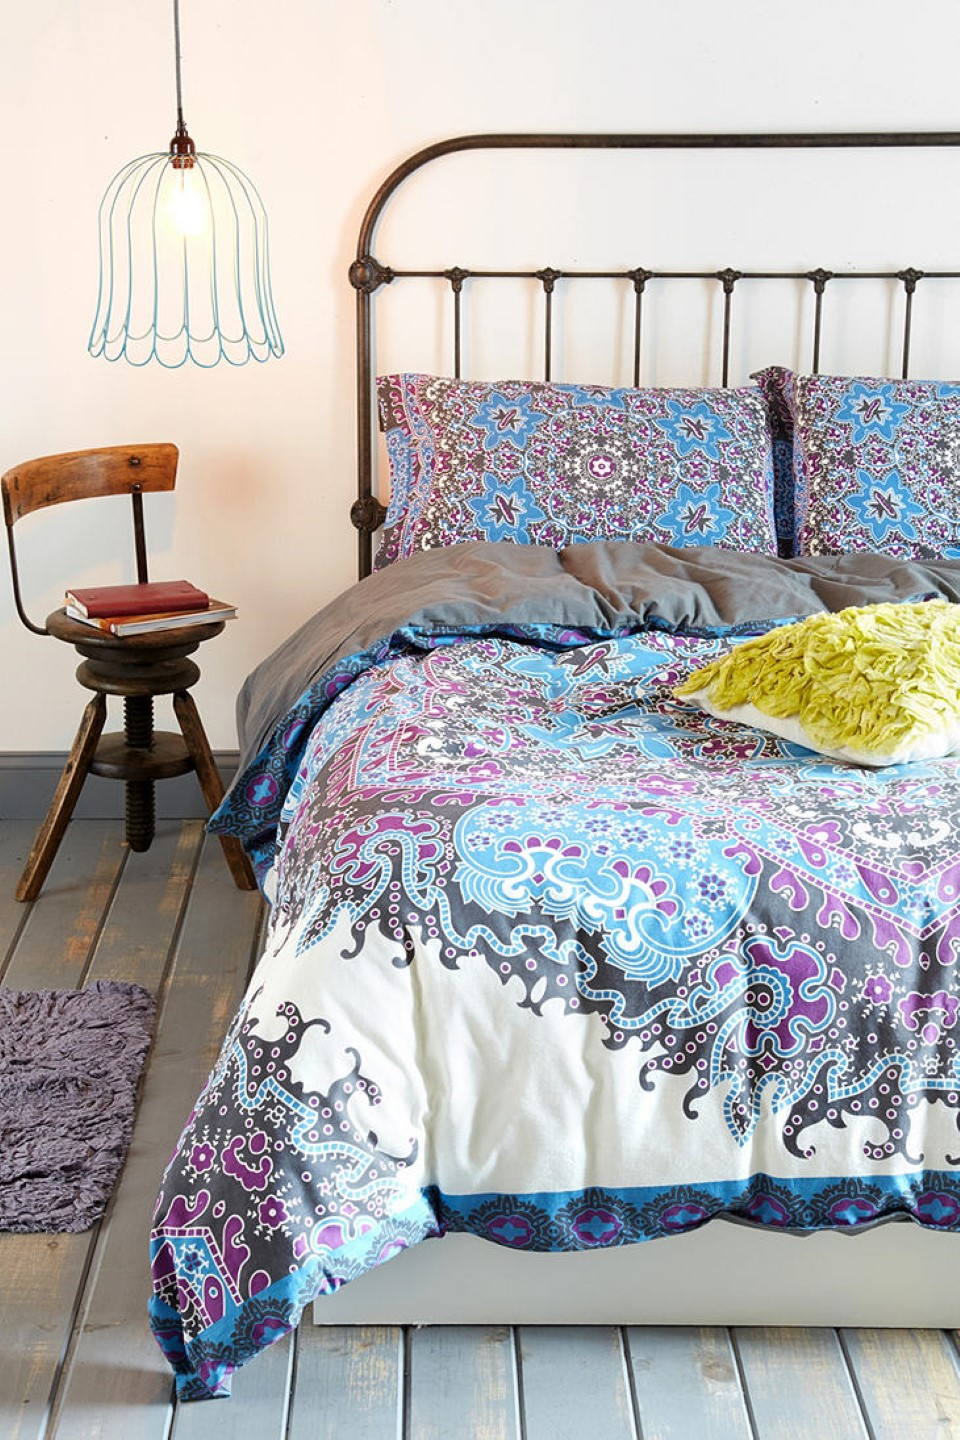 Bed Covers. Add the finishing touch to your room with bed covers. From floral designs to more modern looking geometric ones, discover the perfect bedding to complement your boudoir. A Bright Idea.